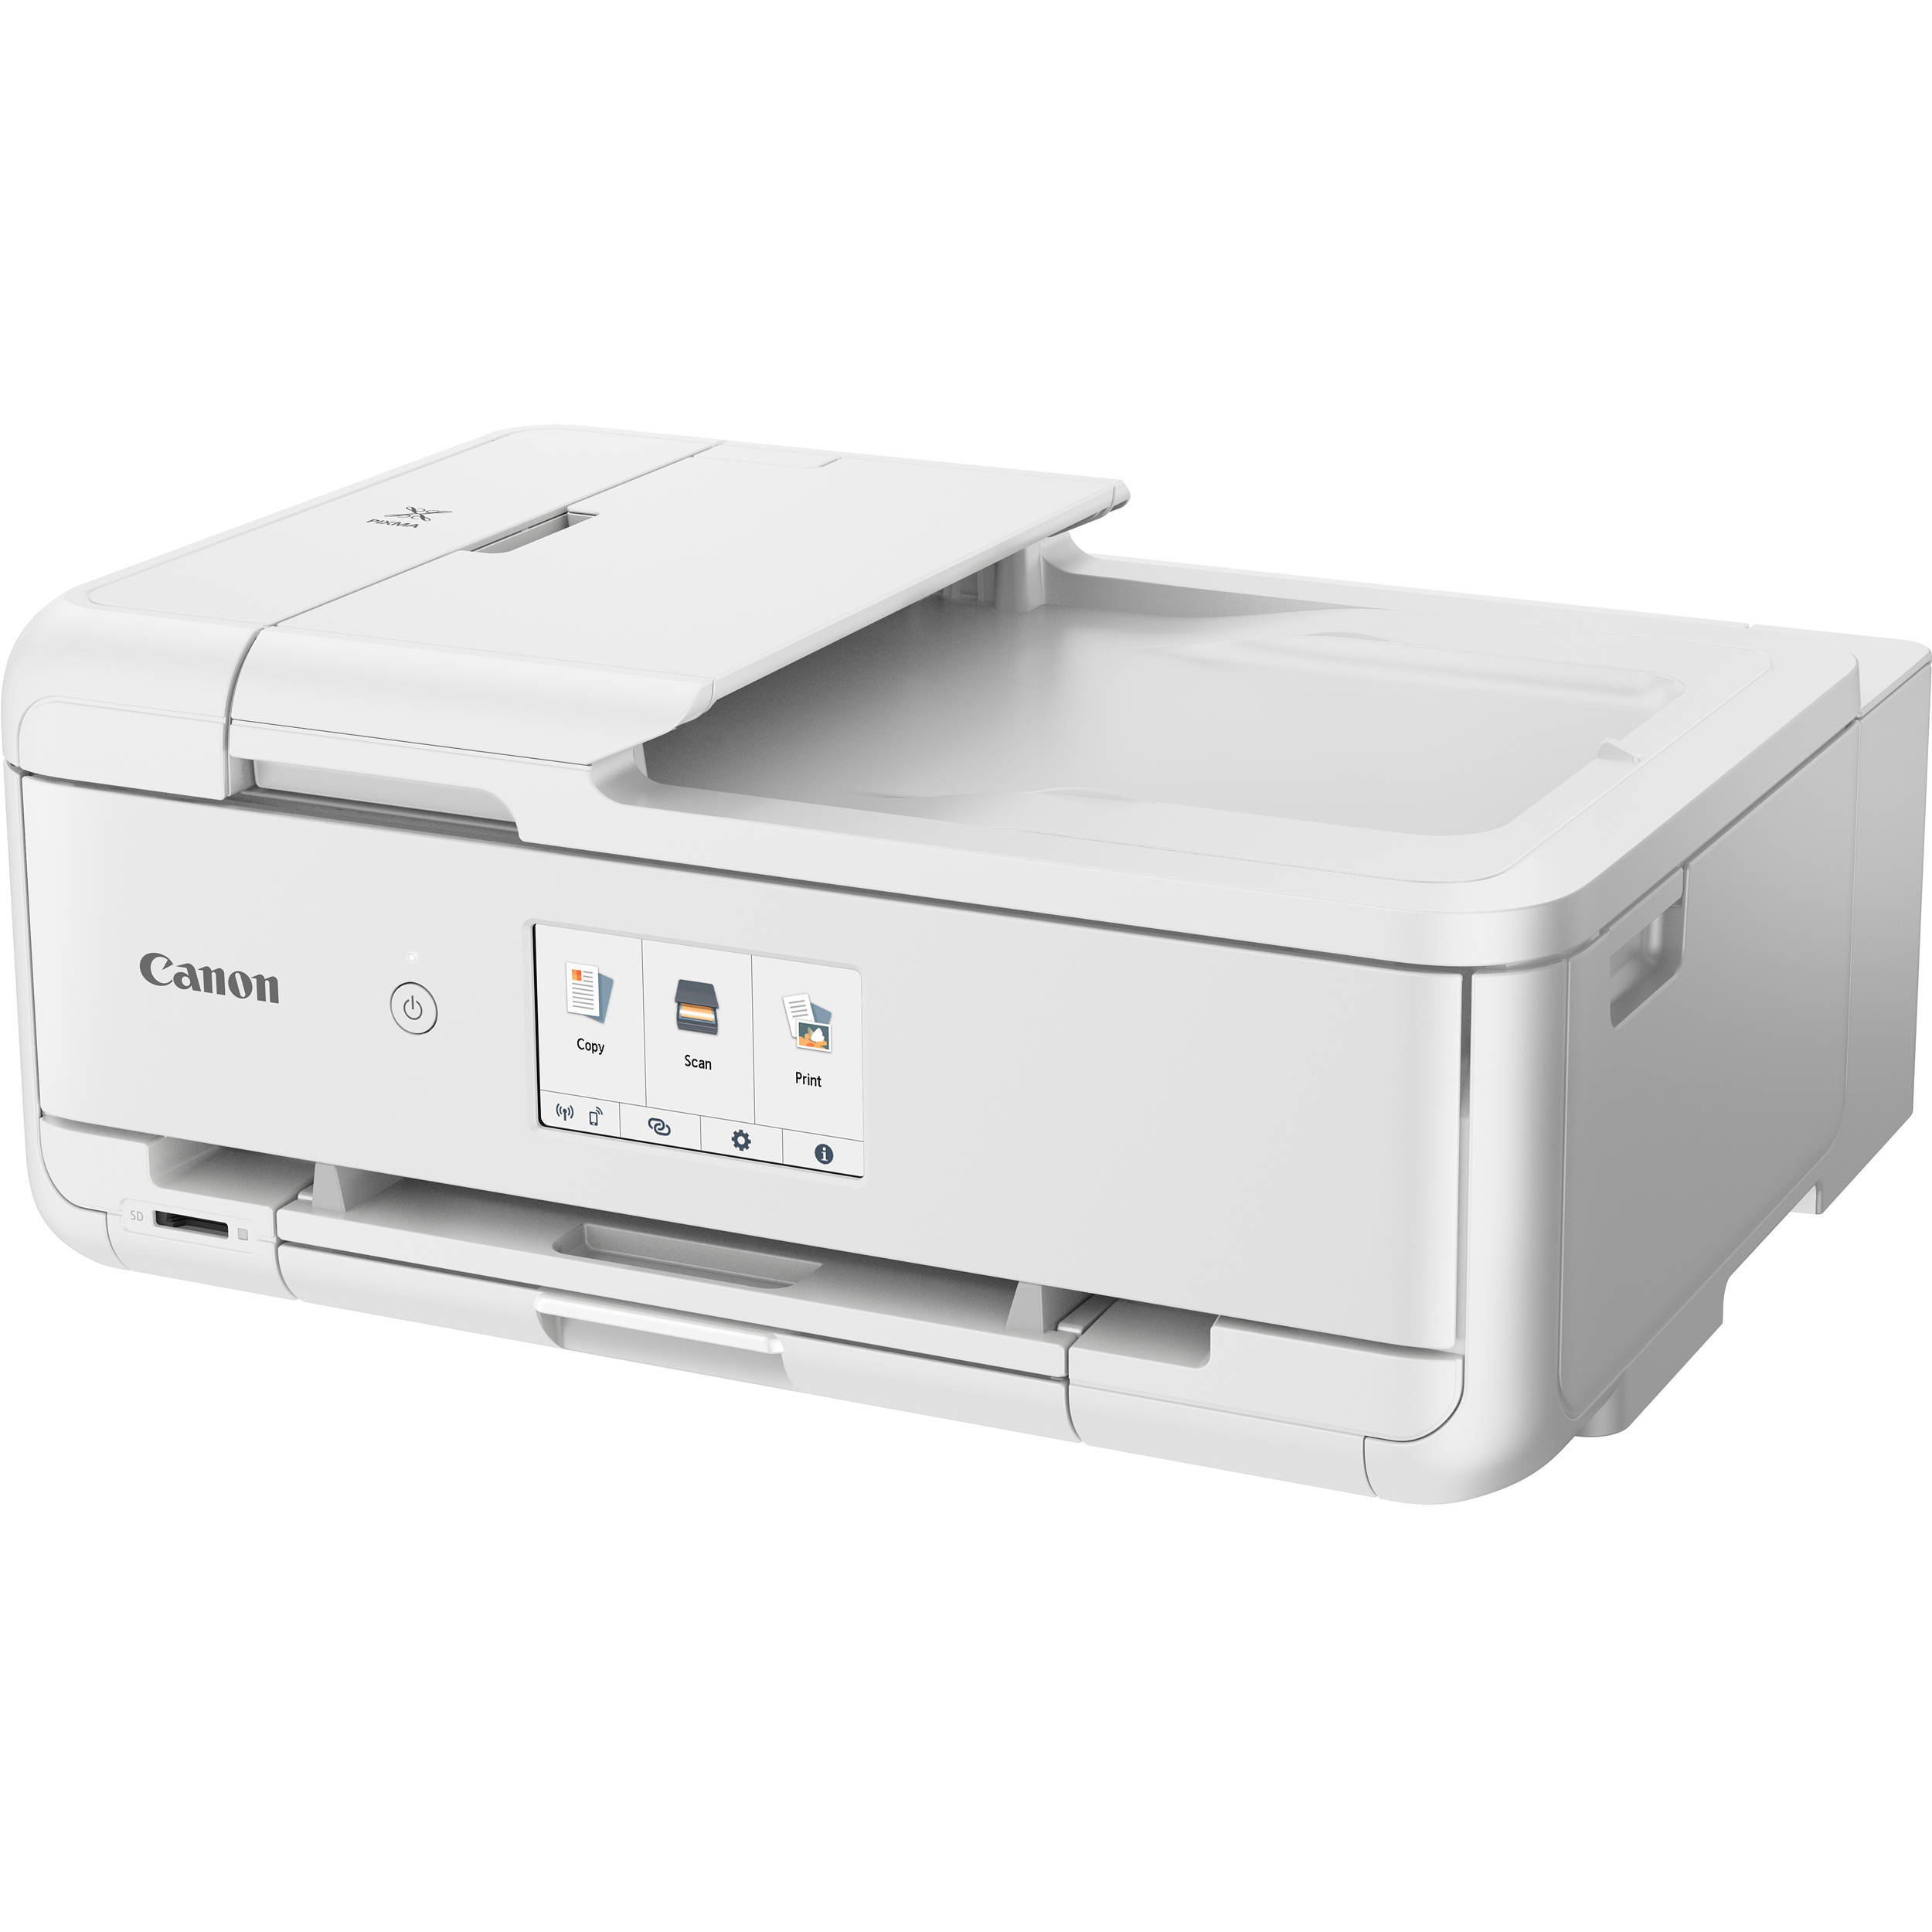 Canon Pixma Ts9521c Wireless All In One Craft Printer 2988c022